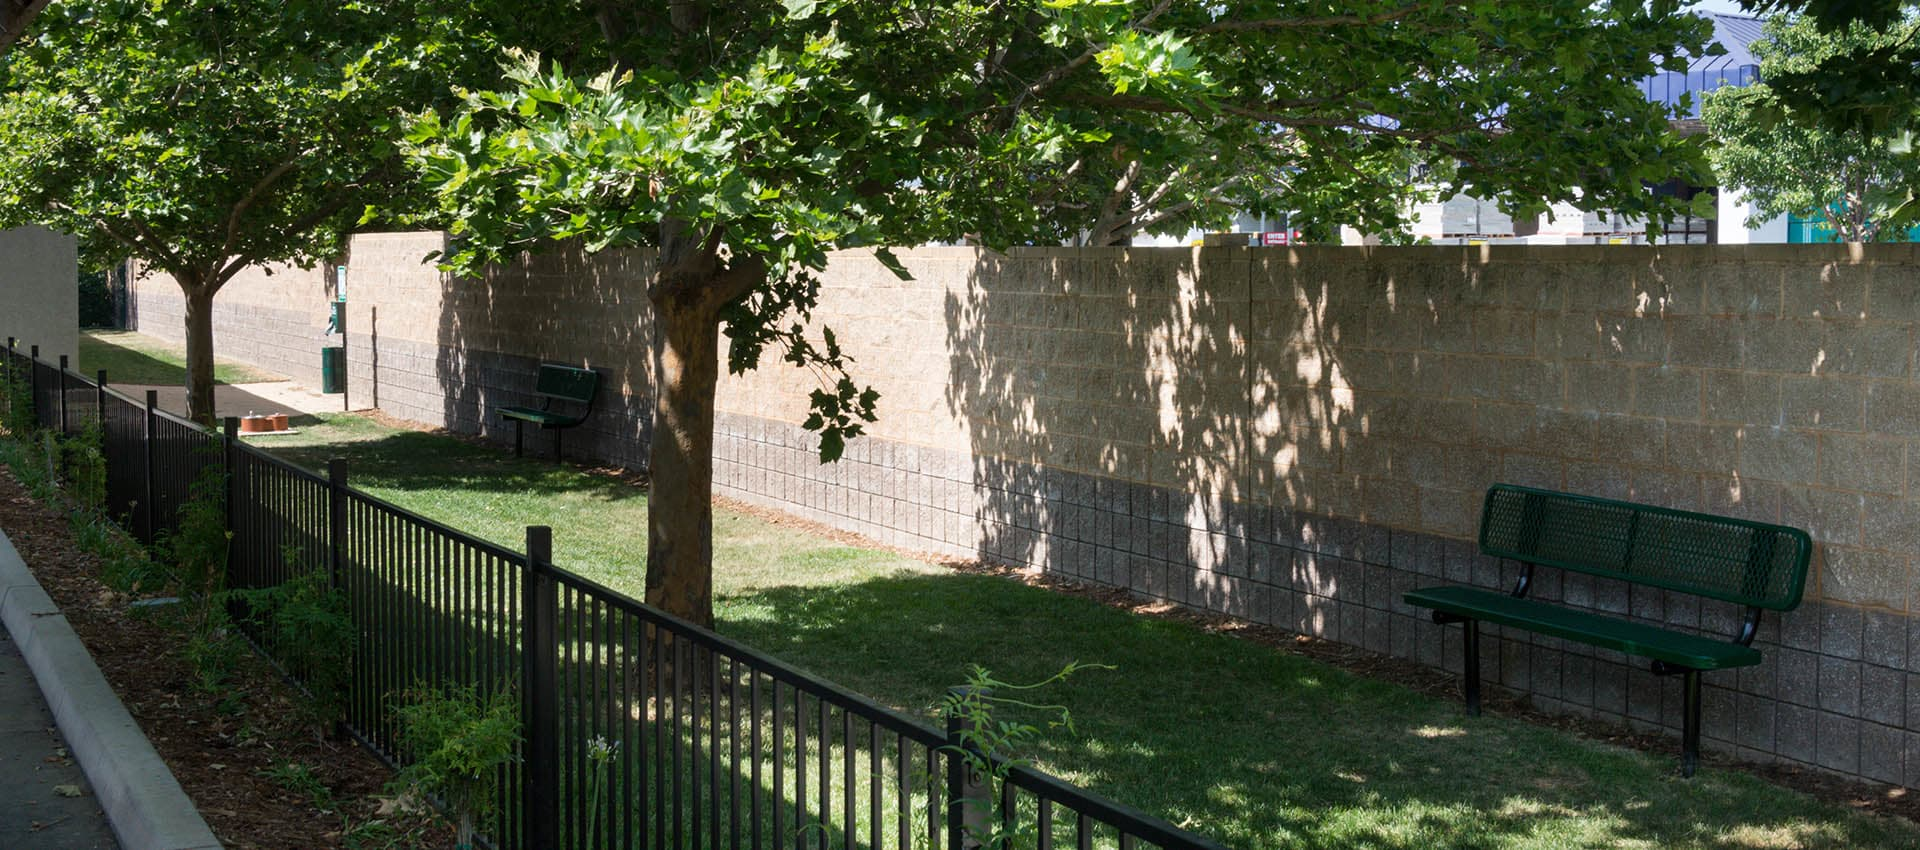 Dog Park at The Artisan Apartment Homes in Sacramento, California